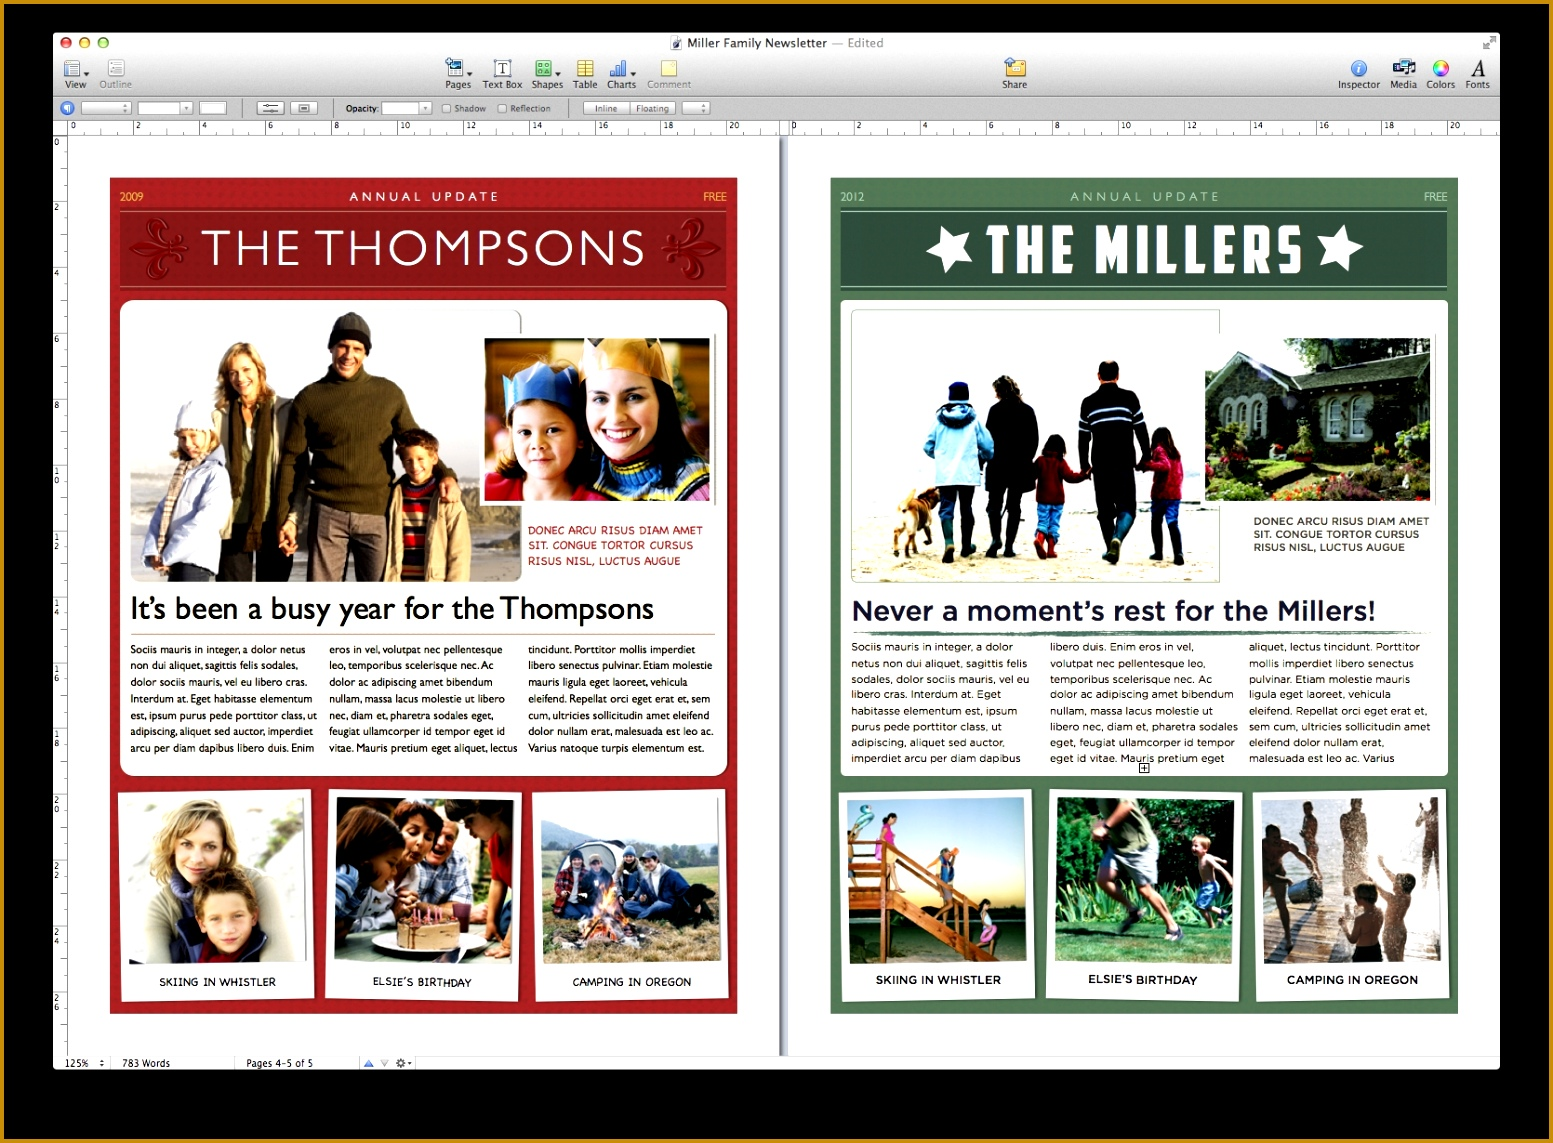 employee newsletter templates doc holiday newsletter template u2013 worddraw free christmas 15531143